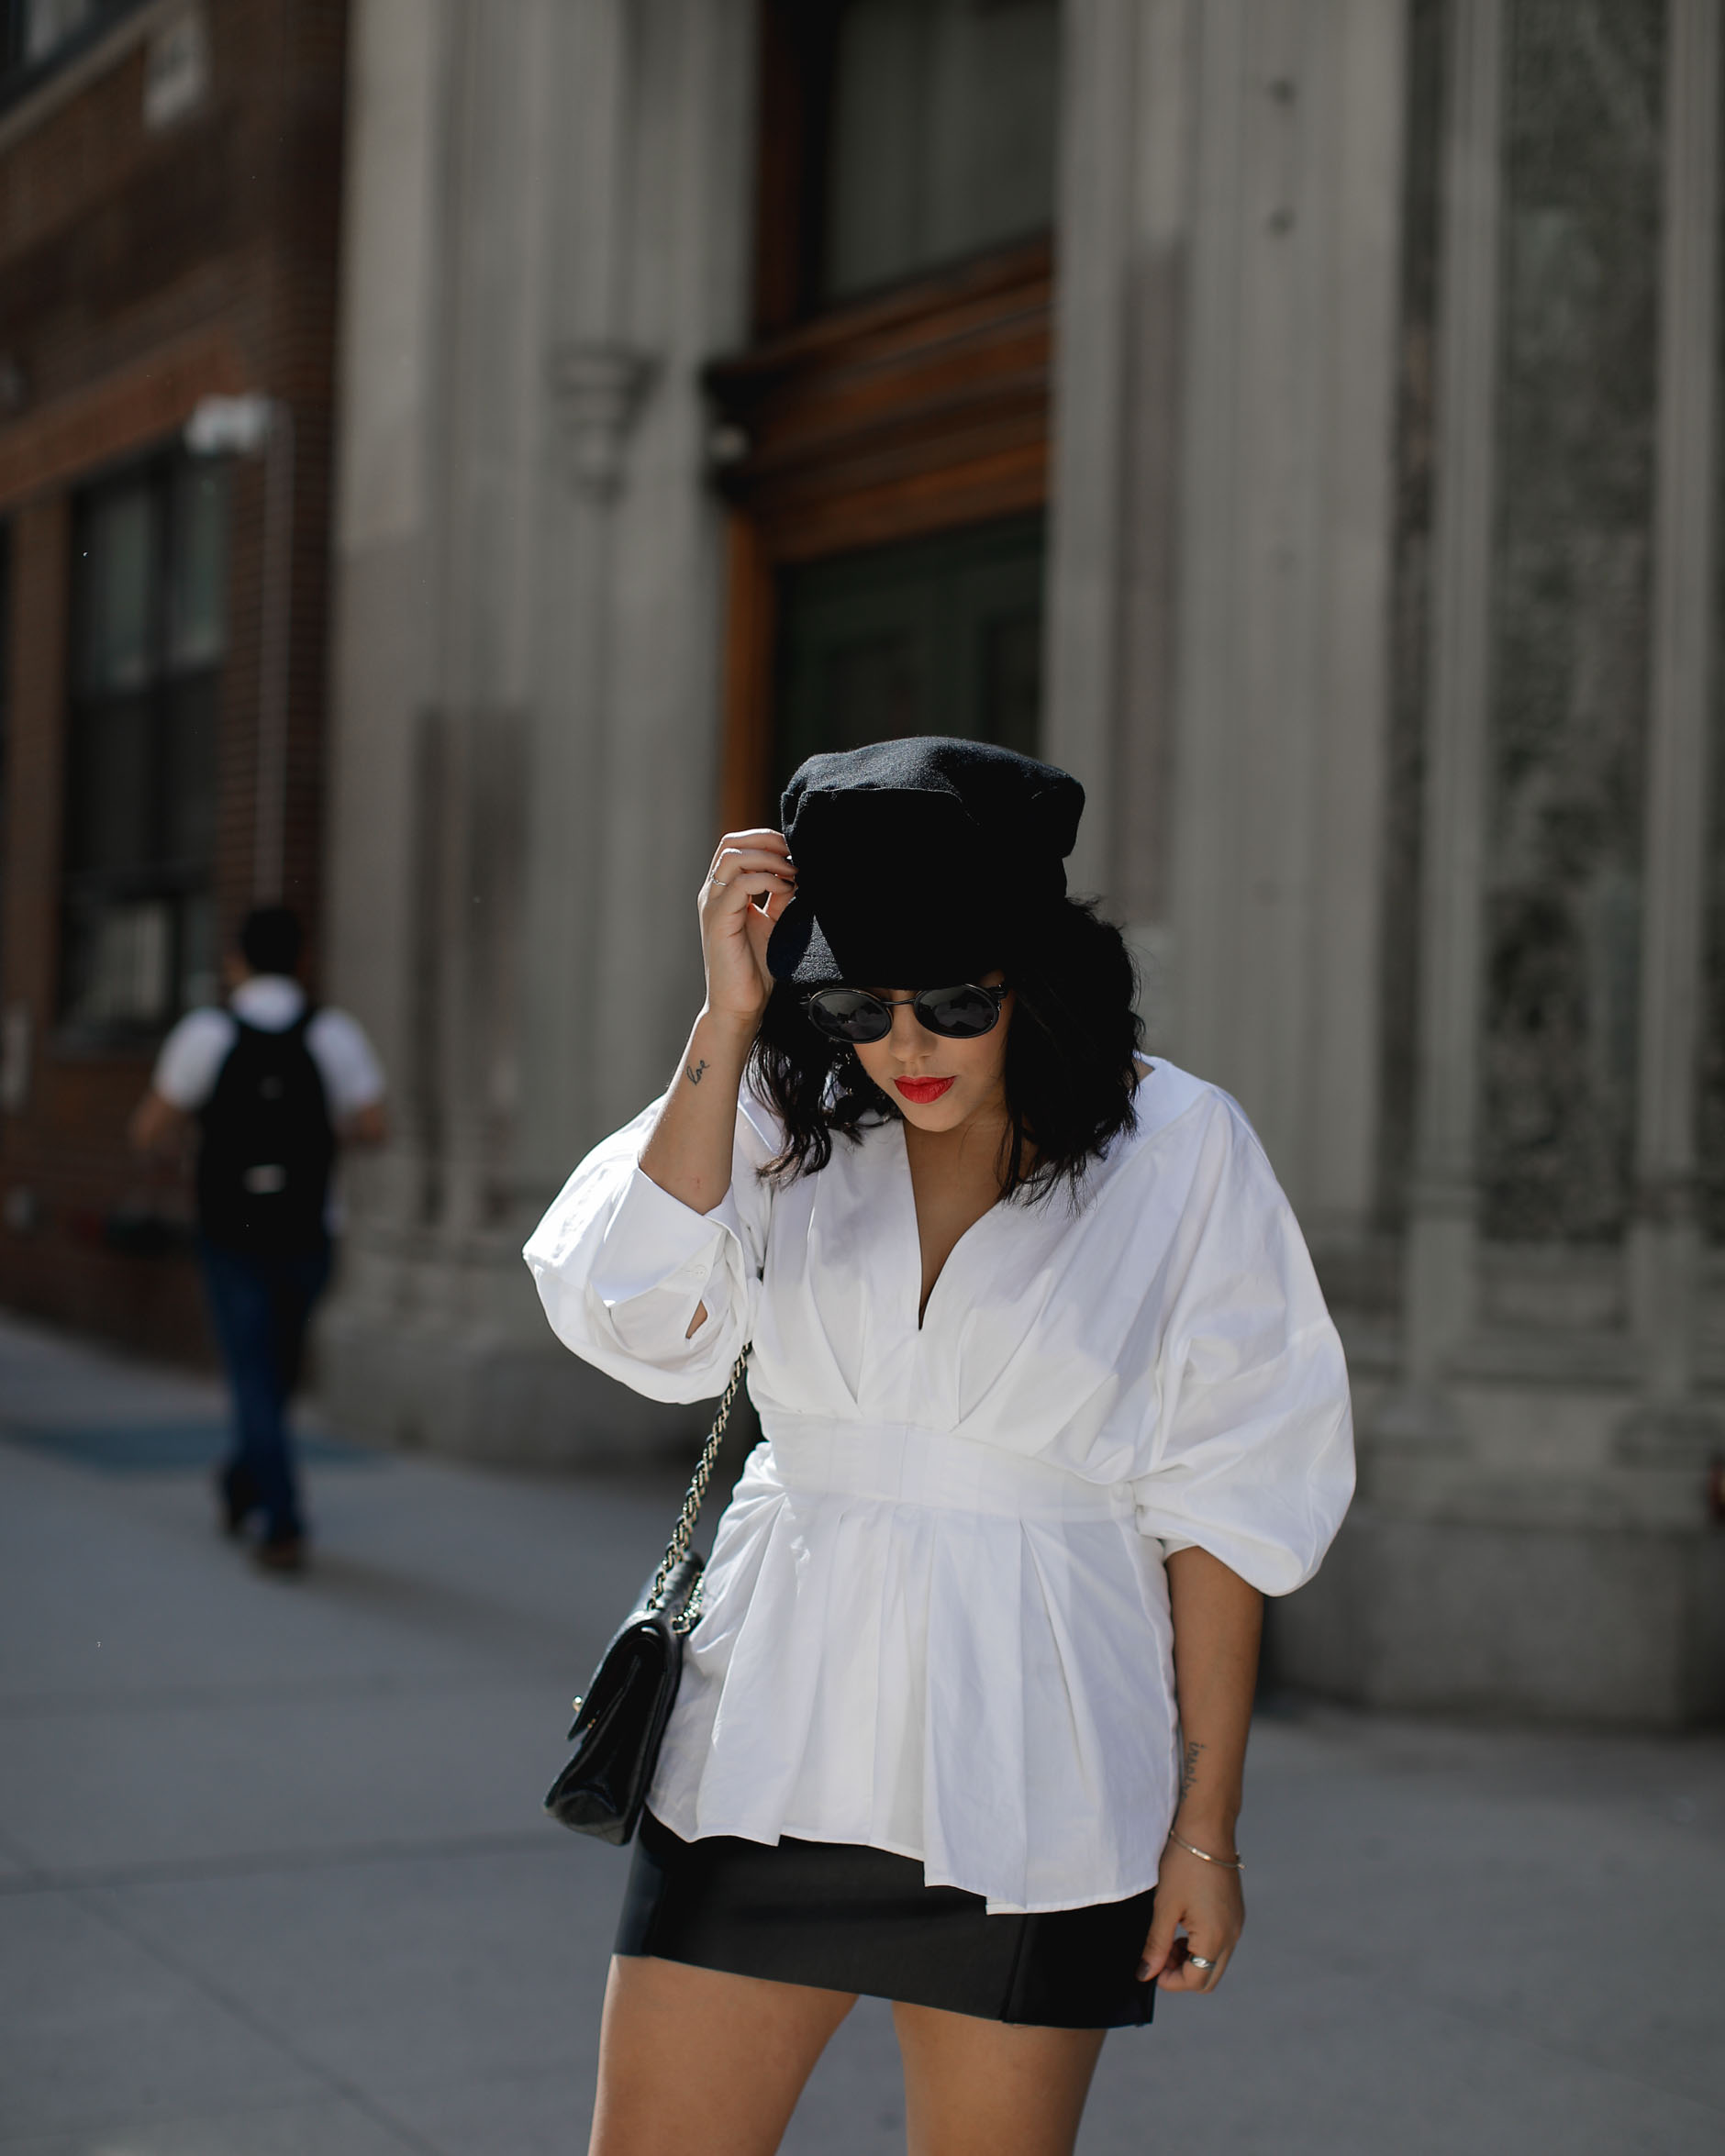 lifestyle blogger naty michele wearing statement sleeves and cabbie hat at nyfw